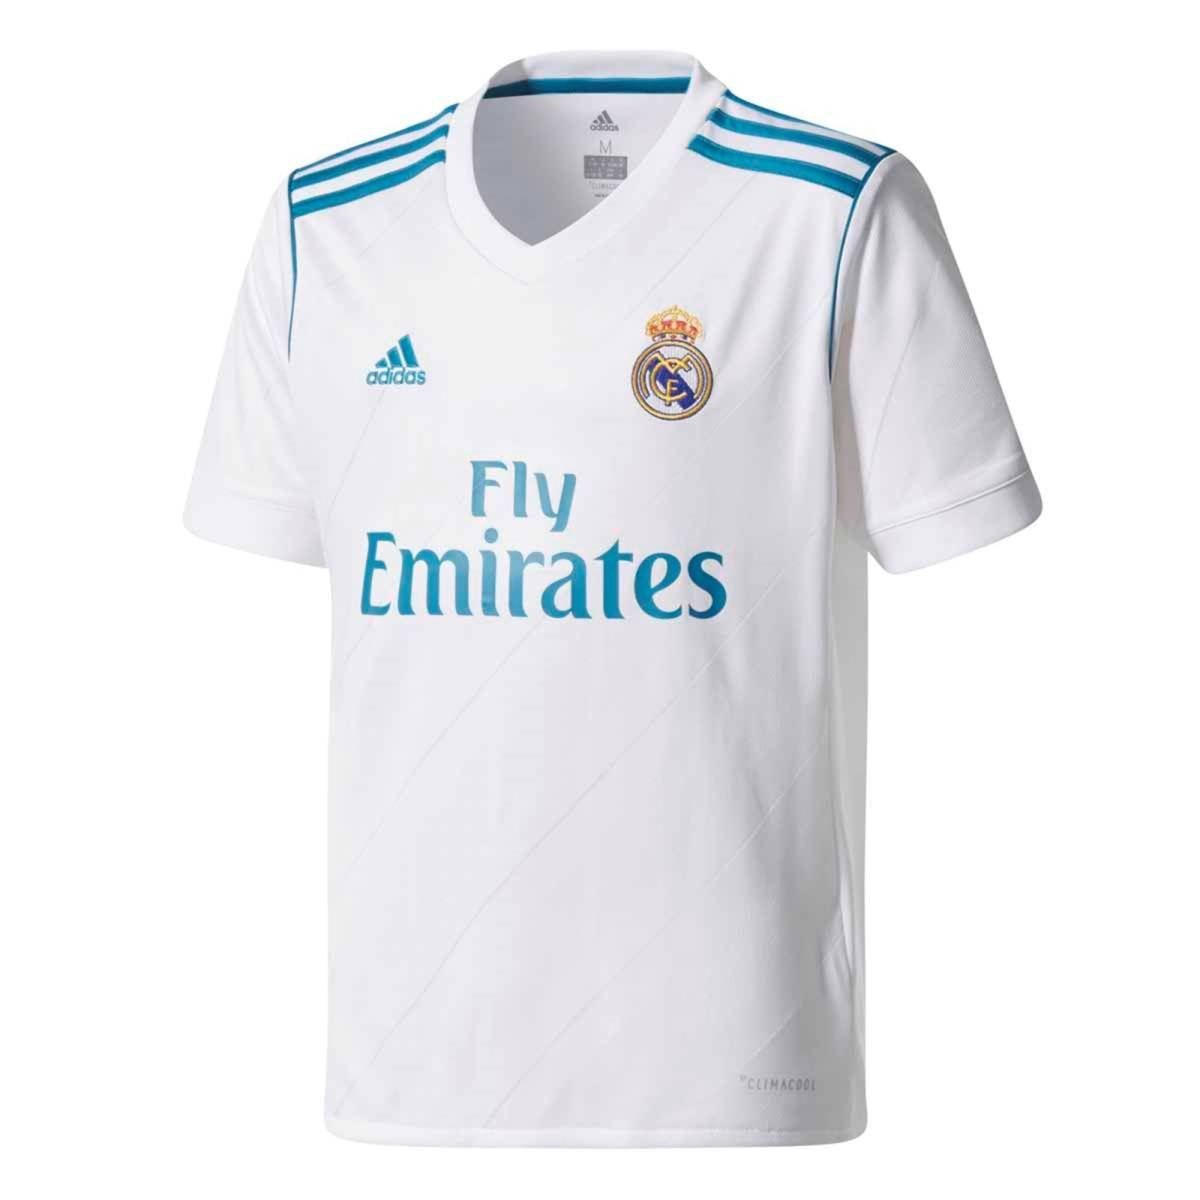 4236926c Amazon.com : adidas Real Madrid Home Soccer Jersey Youth 2017/18-White :  Sports & Outdoors